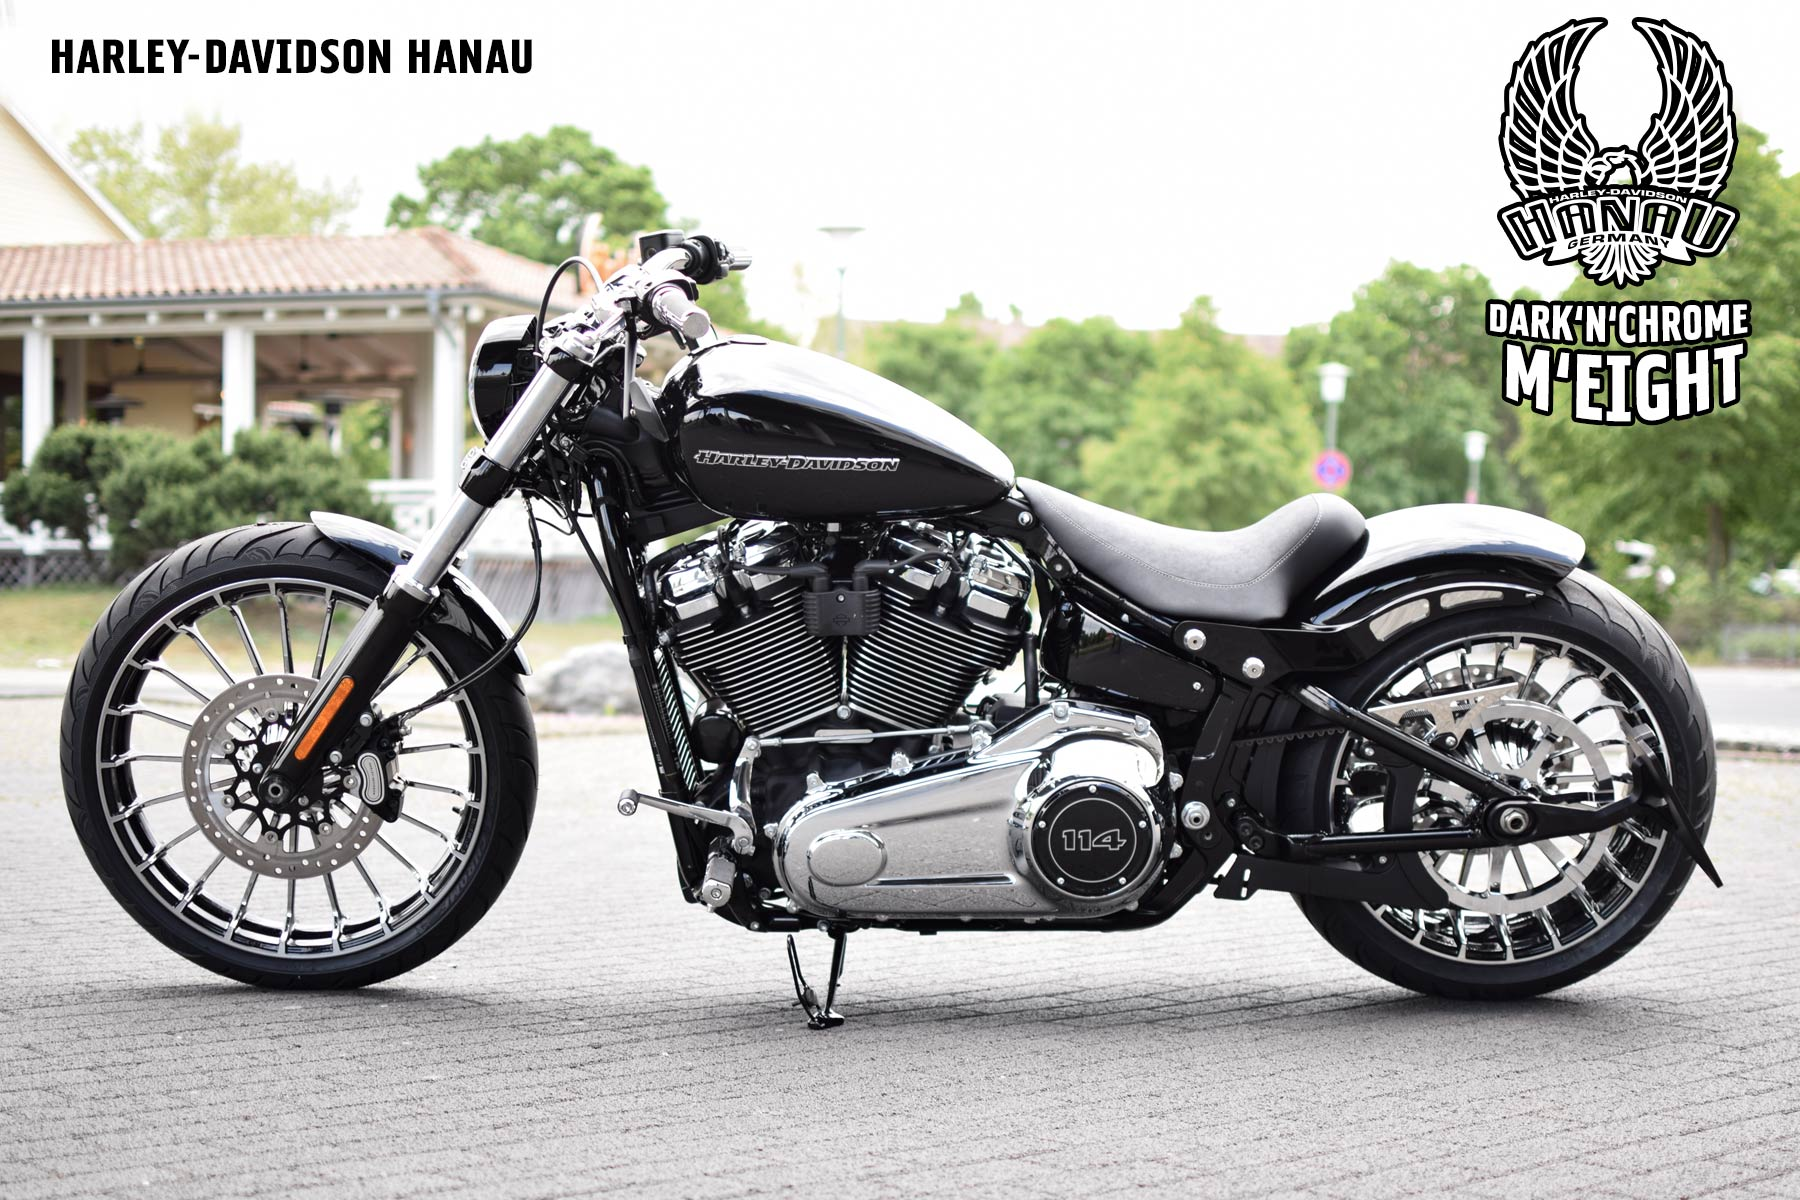 softail-breakout-umbau-m-eight-06